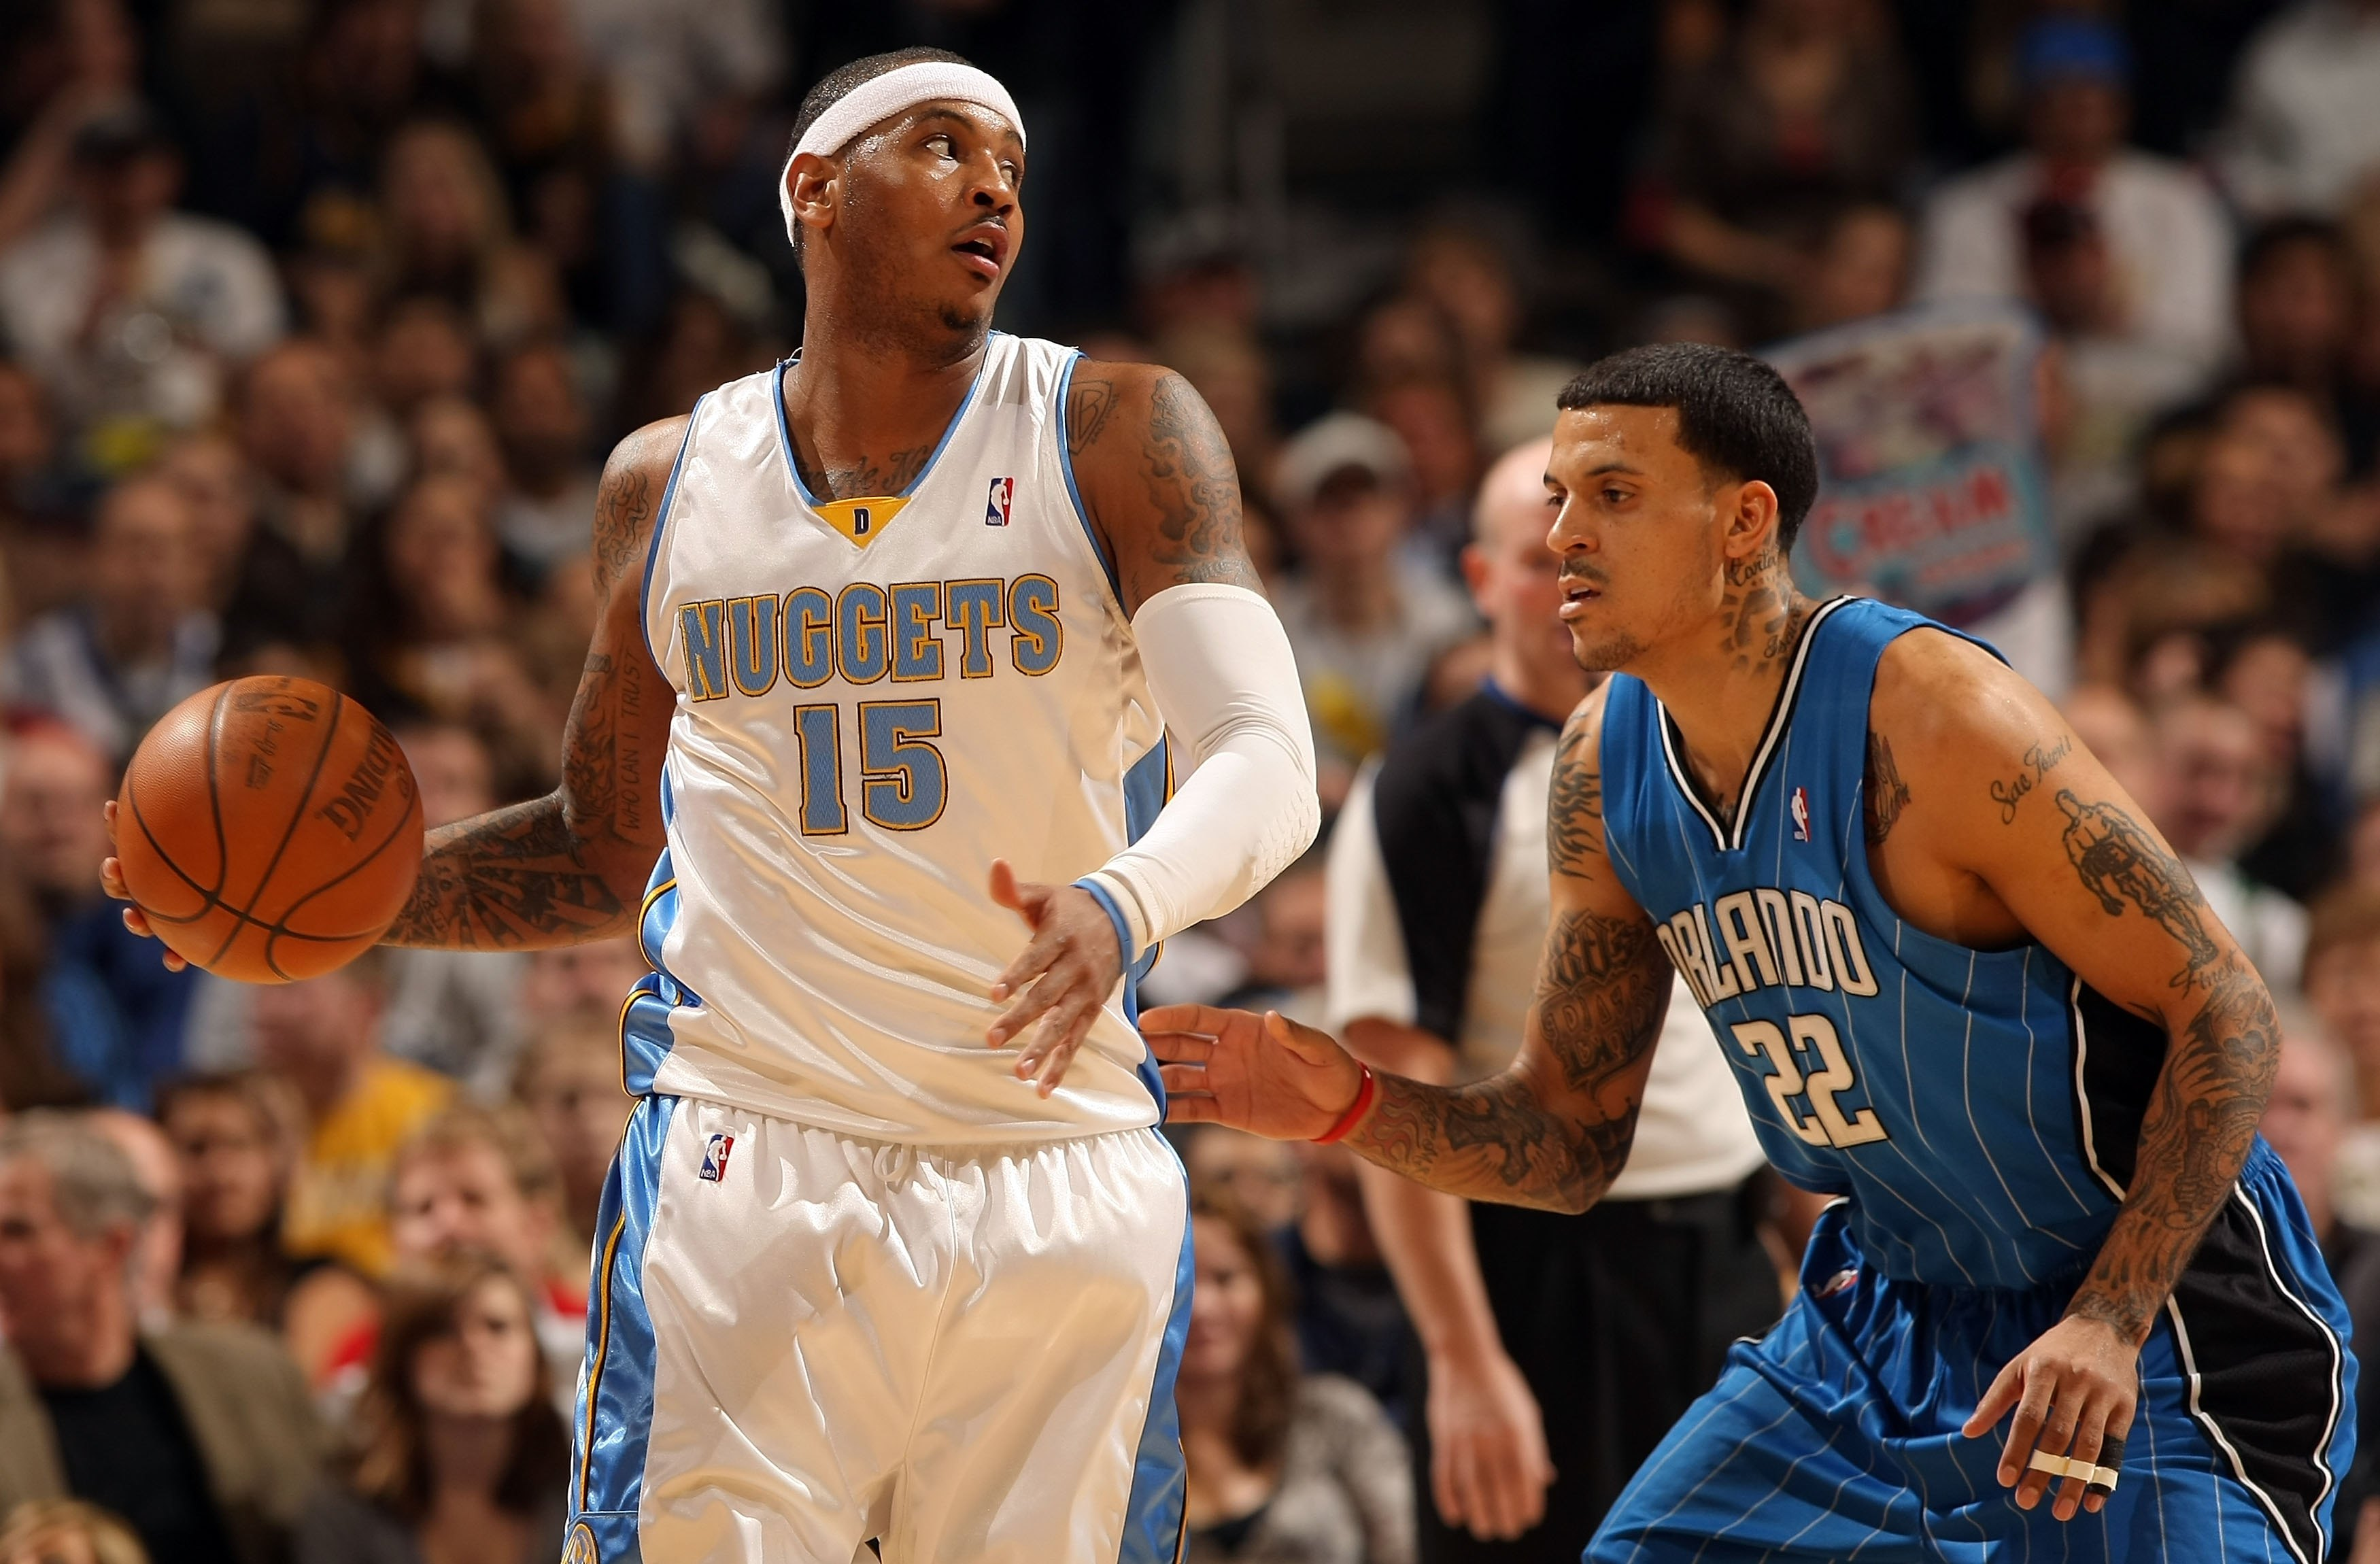 DENVER - JANUARY 13:  Carmelo Anthony #15 of the Denver Nuggets controls the ball against Matt Barnes #22 of the Orlando Magic during NBA action at Pepsi Center on January 13, 2010 in Denver, Colorado. The Nuggets defeated the Magic 115-97. NOTE TO USER: